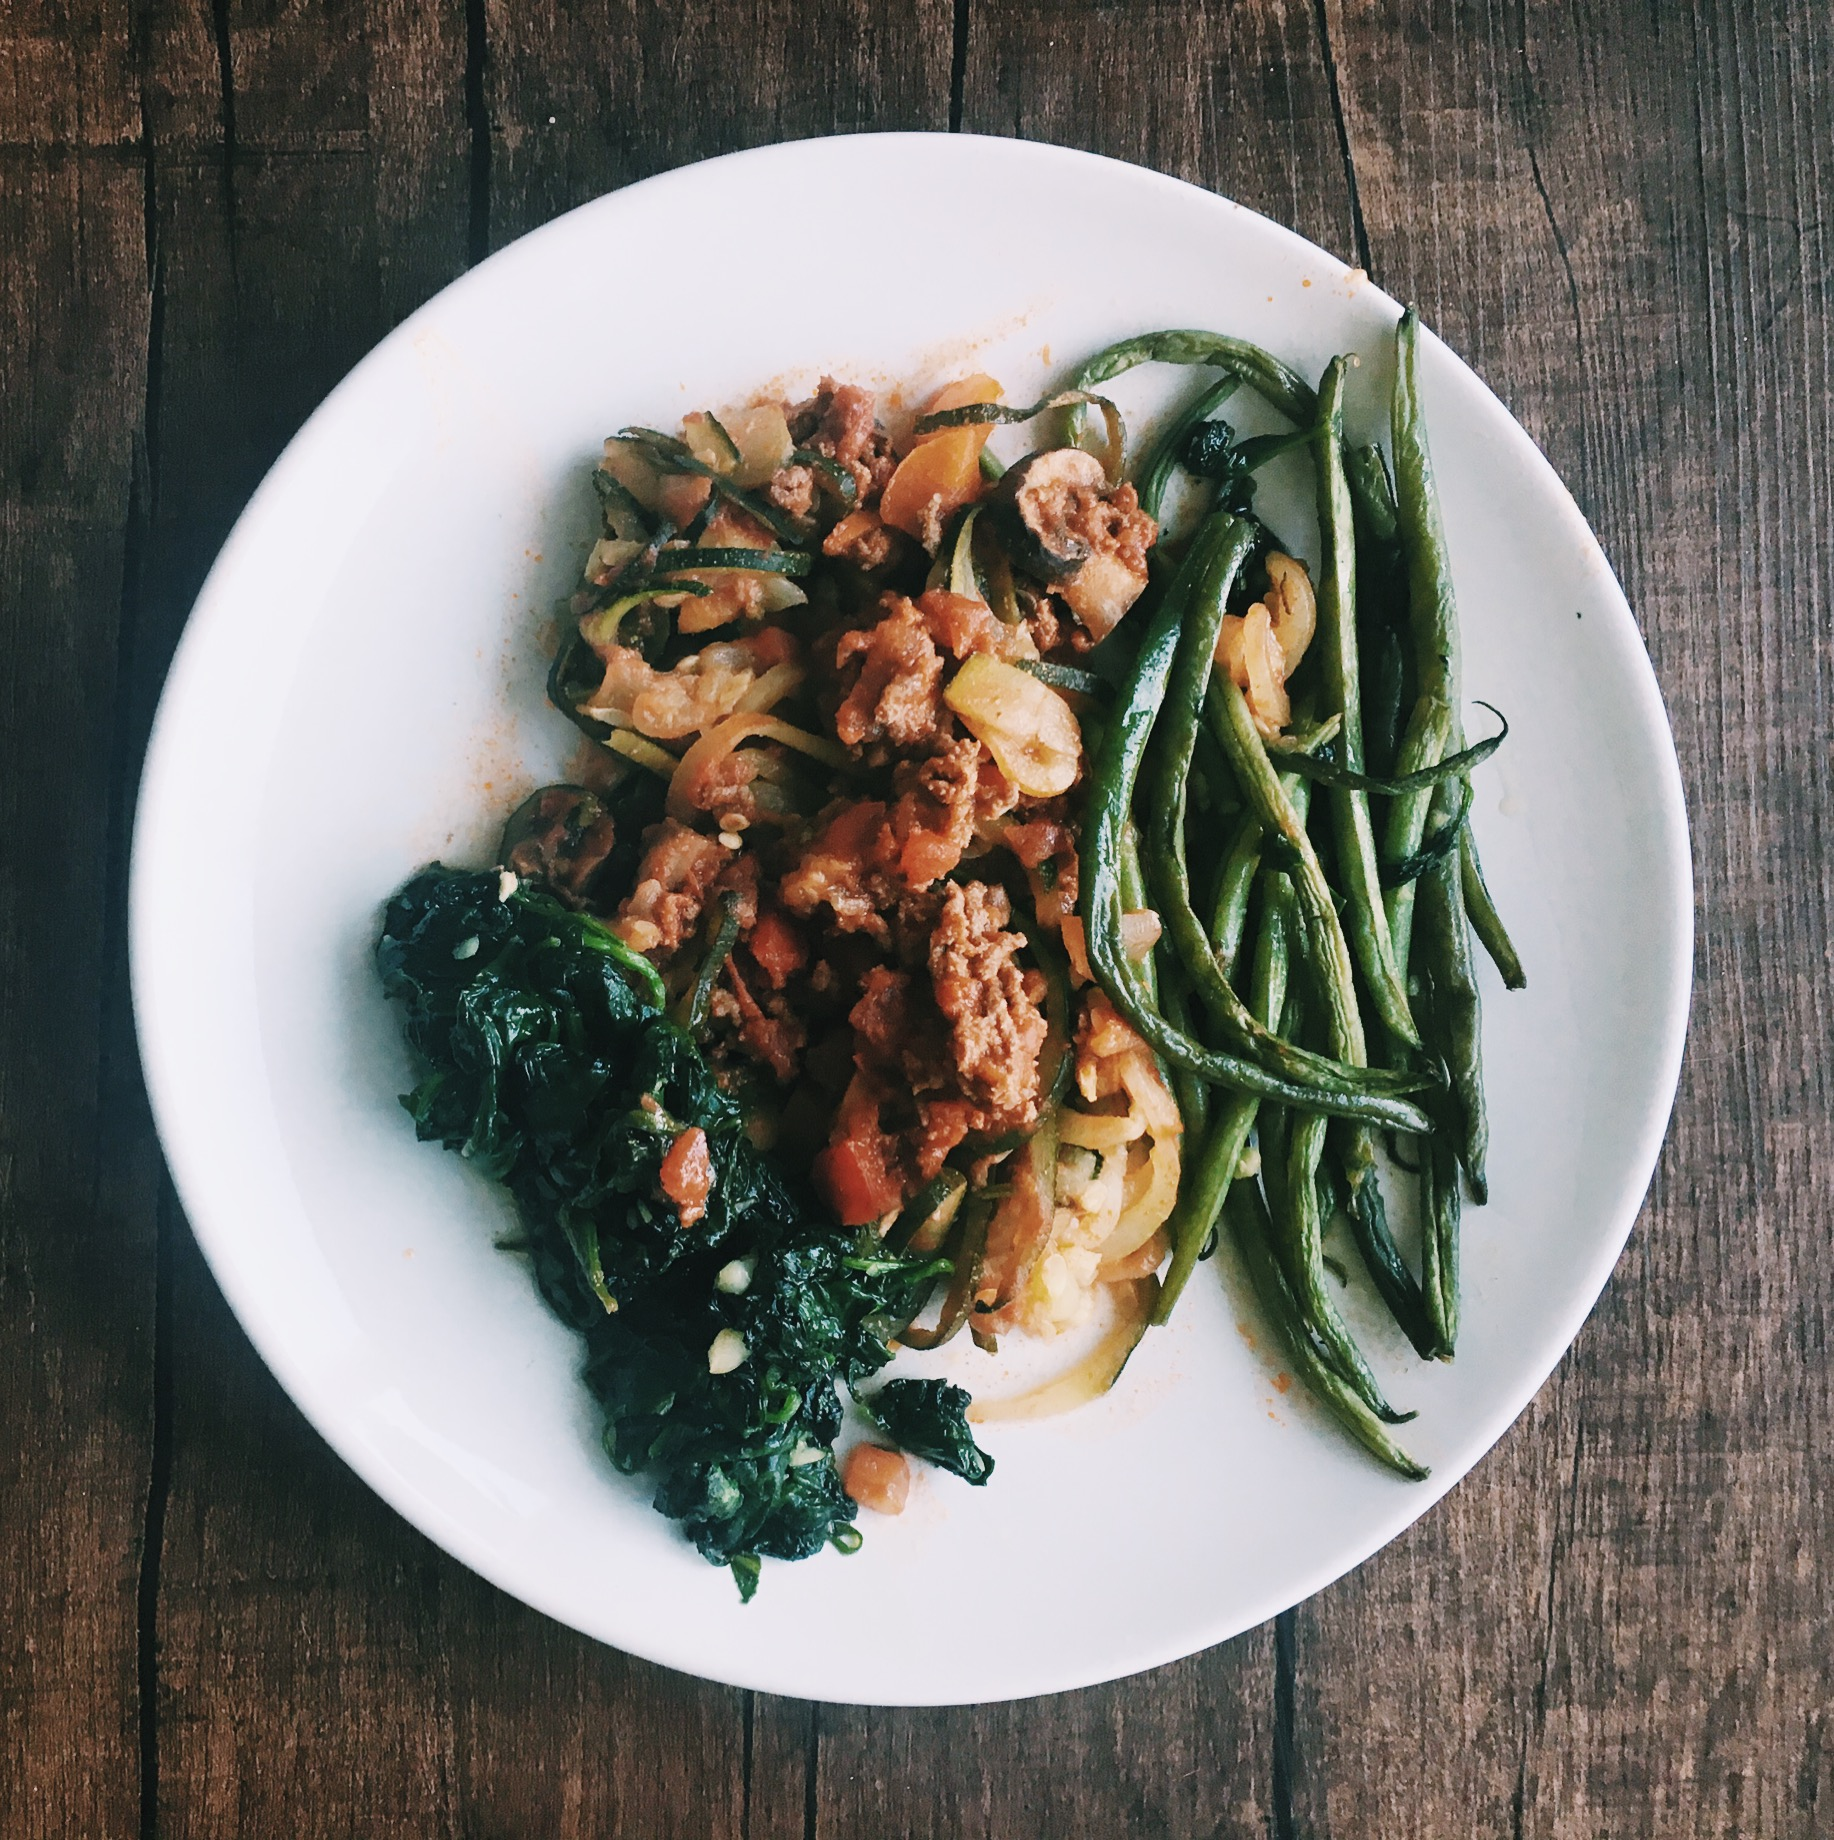 Turkey Spagetti, tomatoes, garlic, peppers, zucchini noodles, whole30 approved spagetti sauce, salt & pepper.   Garlic green beans and garlic spinach both with salt and pepper.